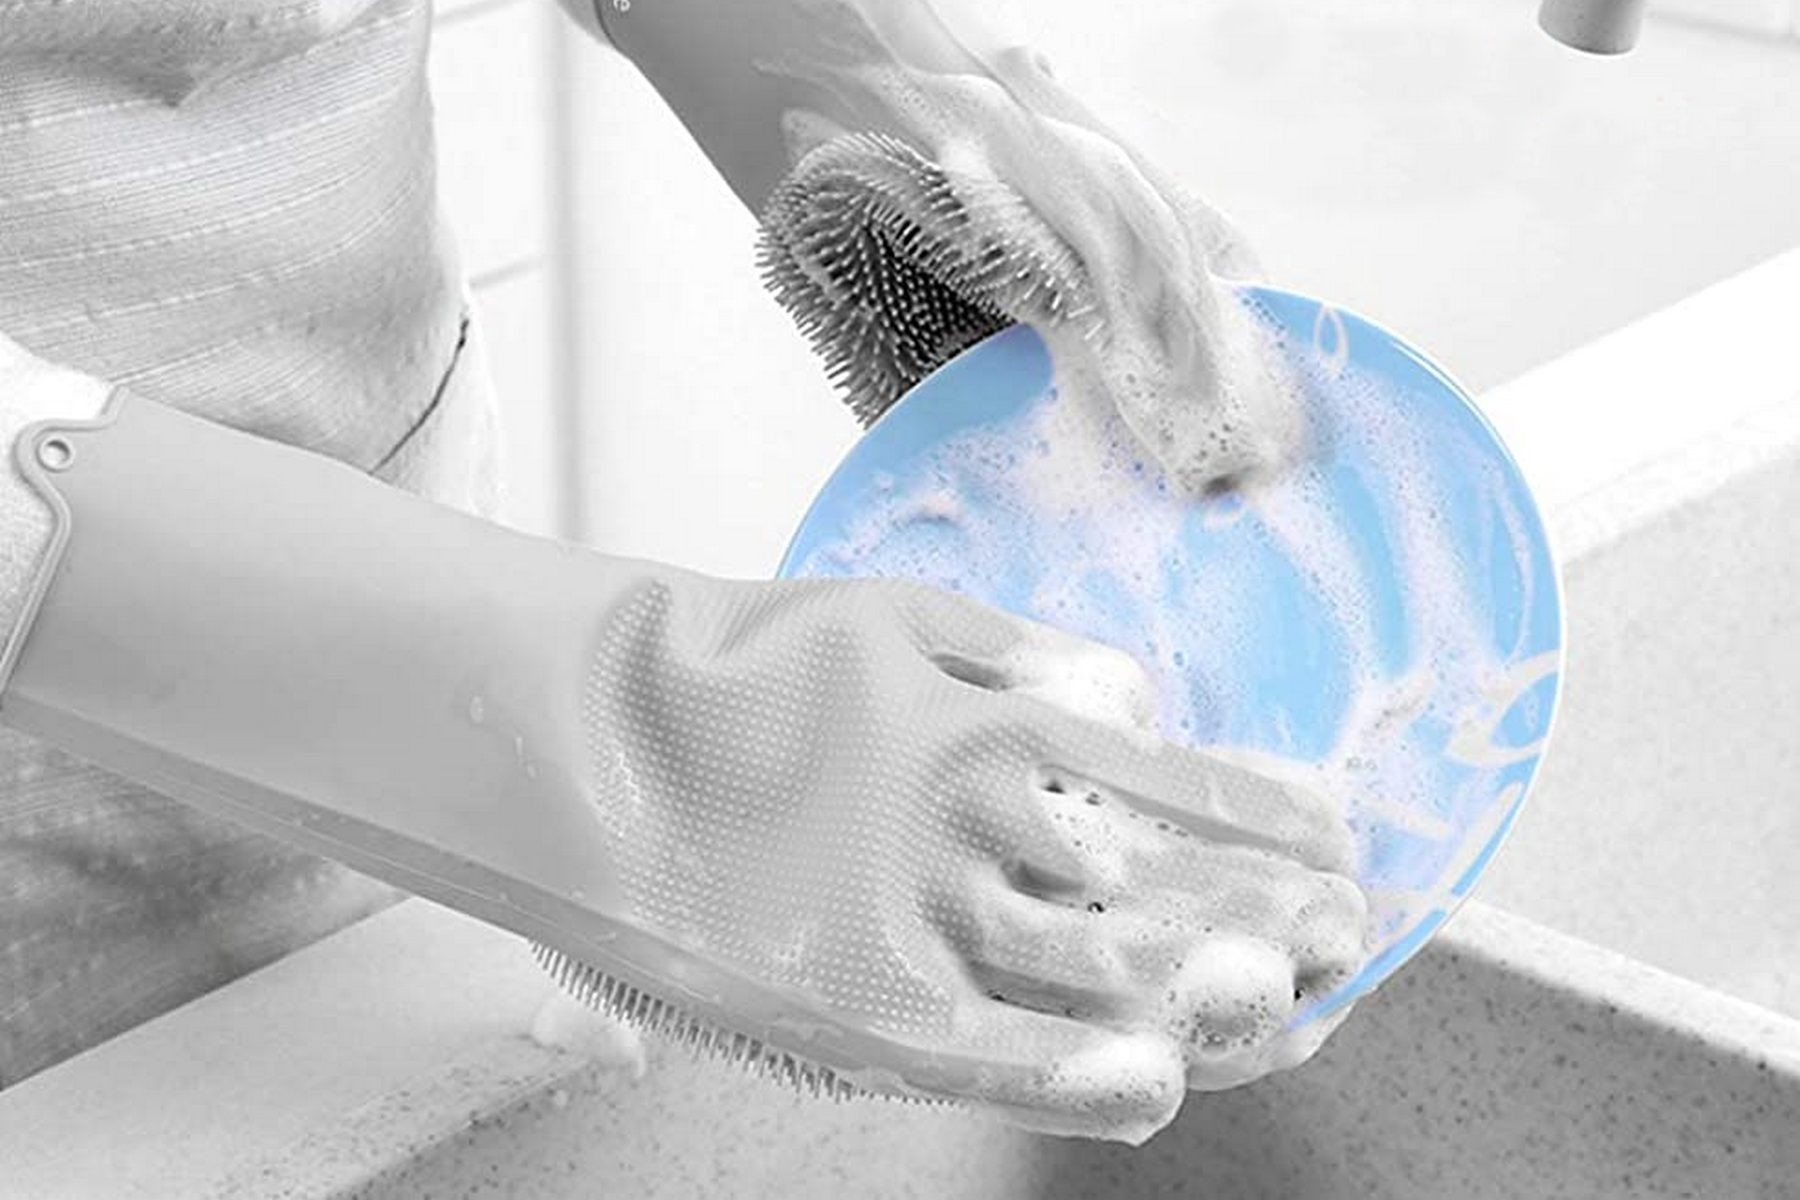 The Best Cleaning Products For Your Home